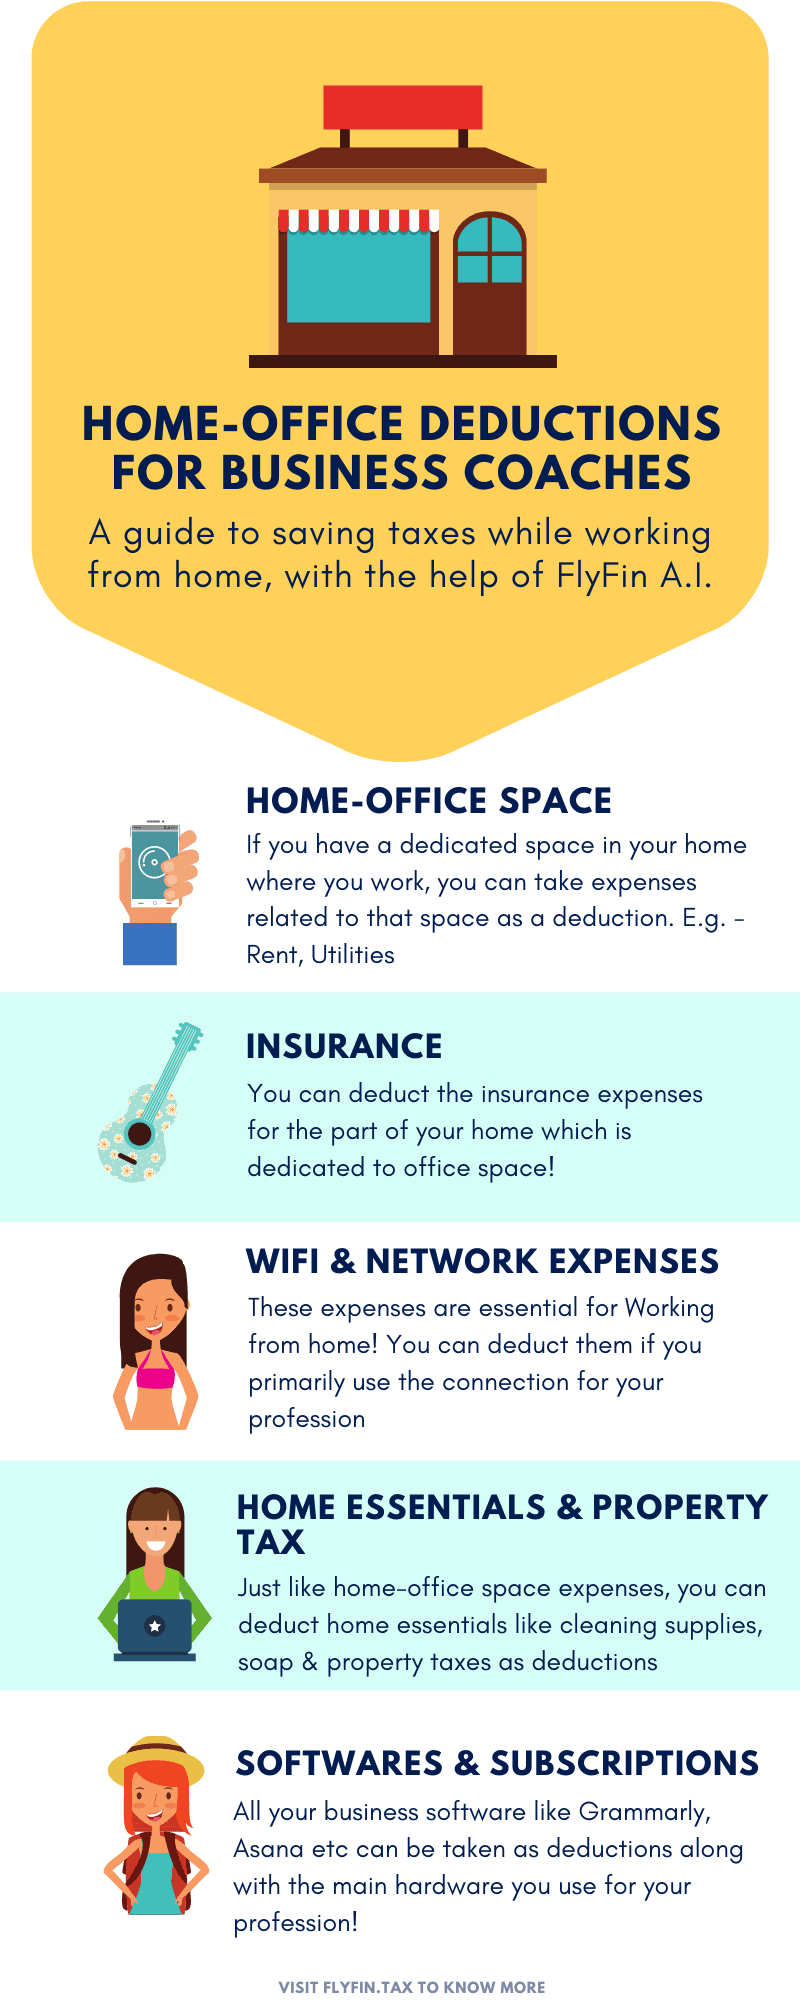 Home Office Deductions for Business coaches